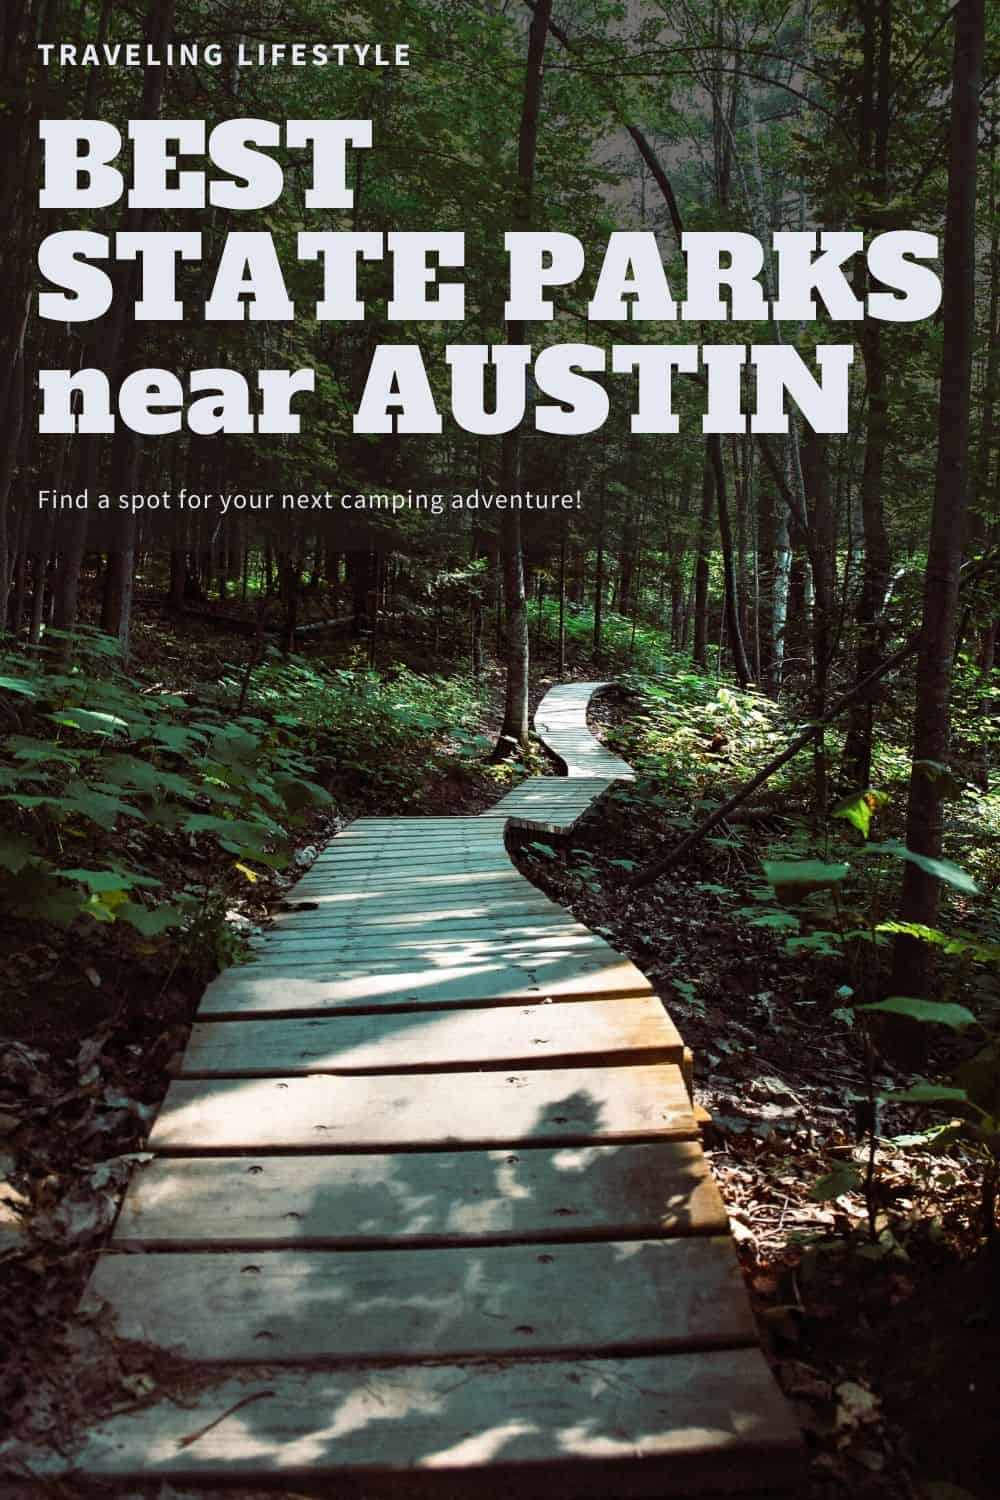 Best State Parks near Austin to visit for hiking or camping